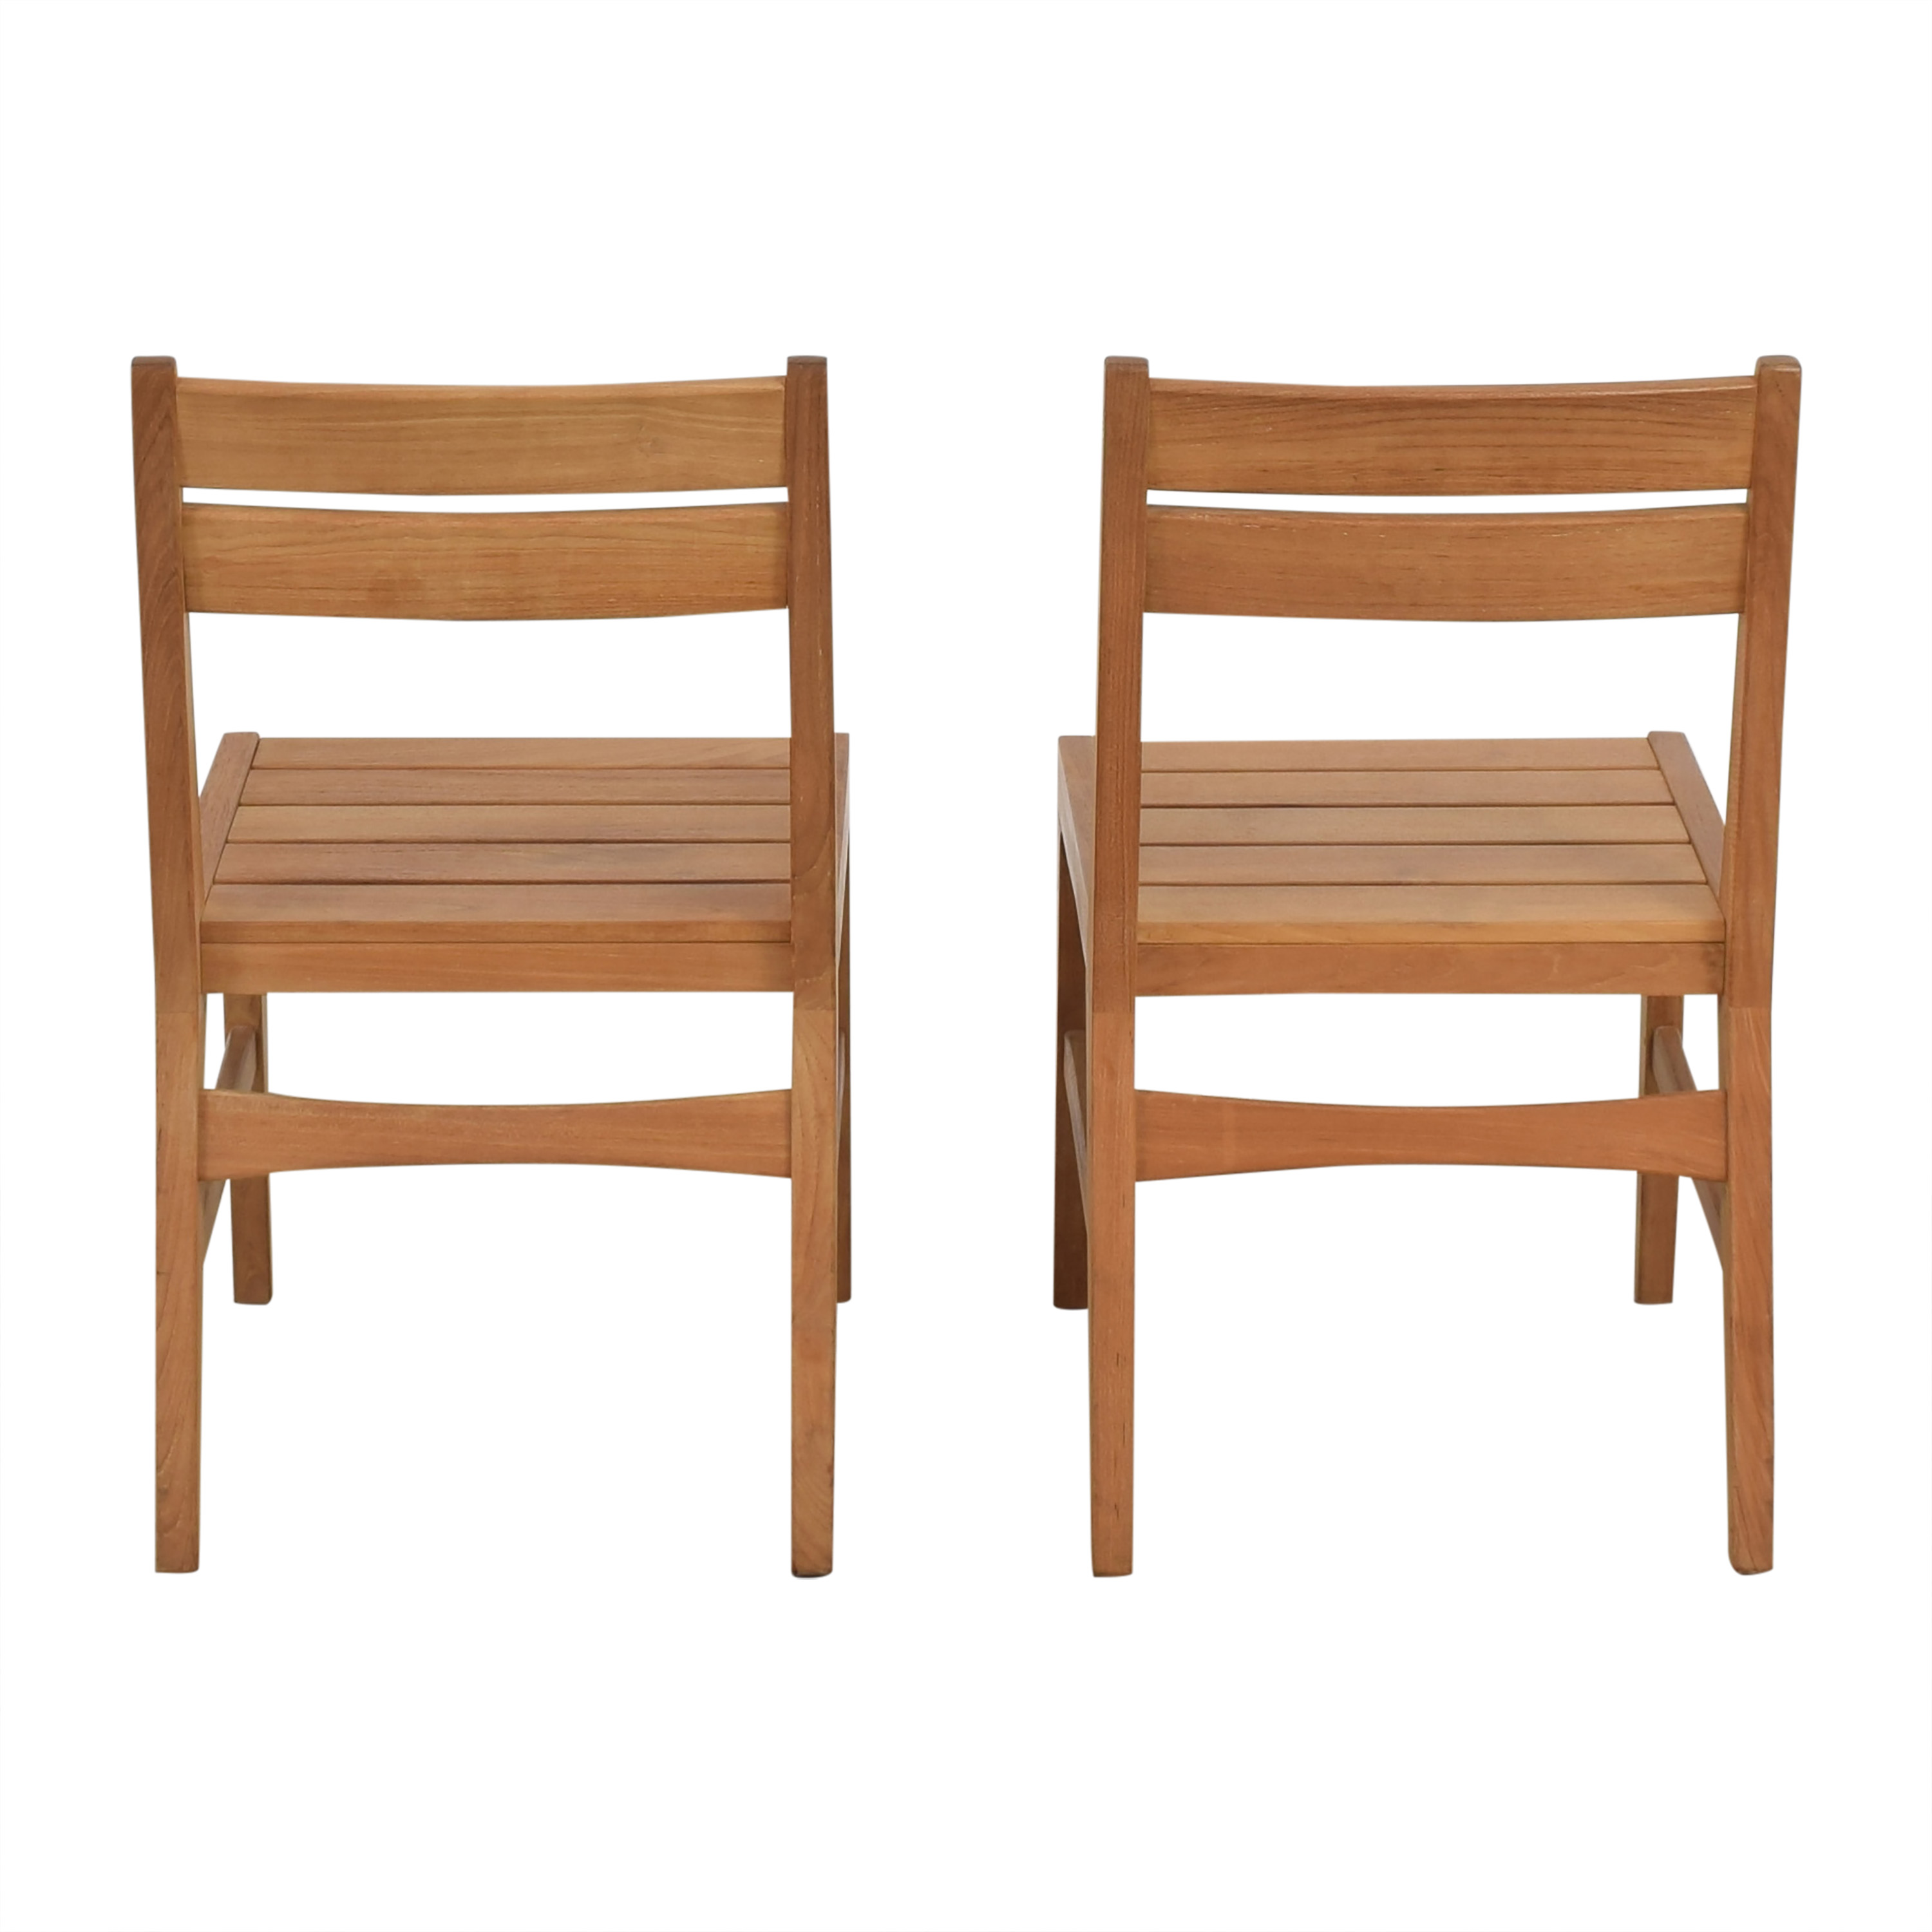 West Elm West Elm Mid-Century Outdoor Dining Chairs nyc